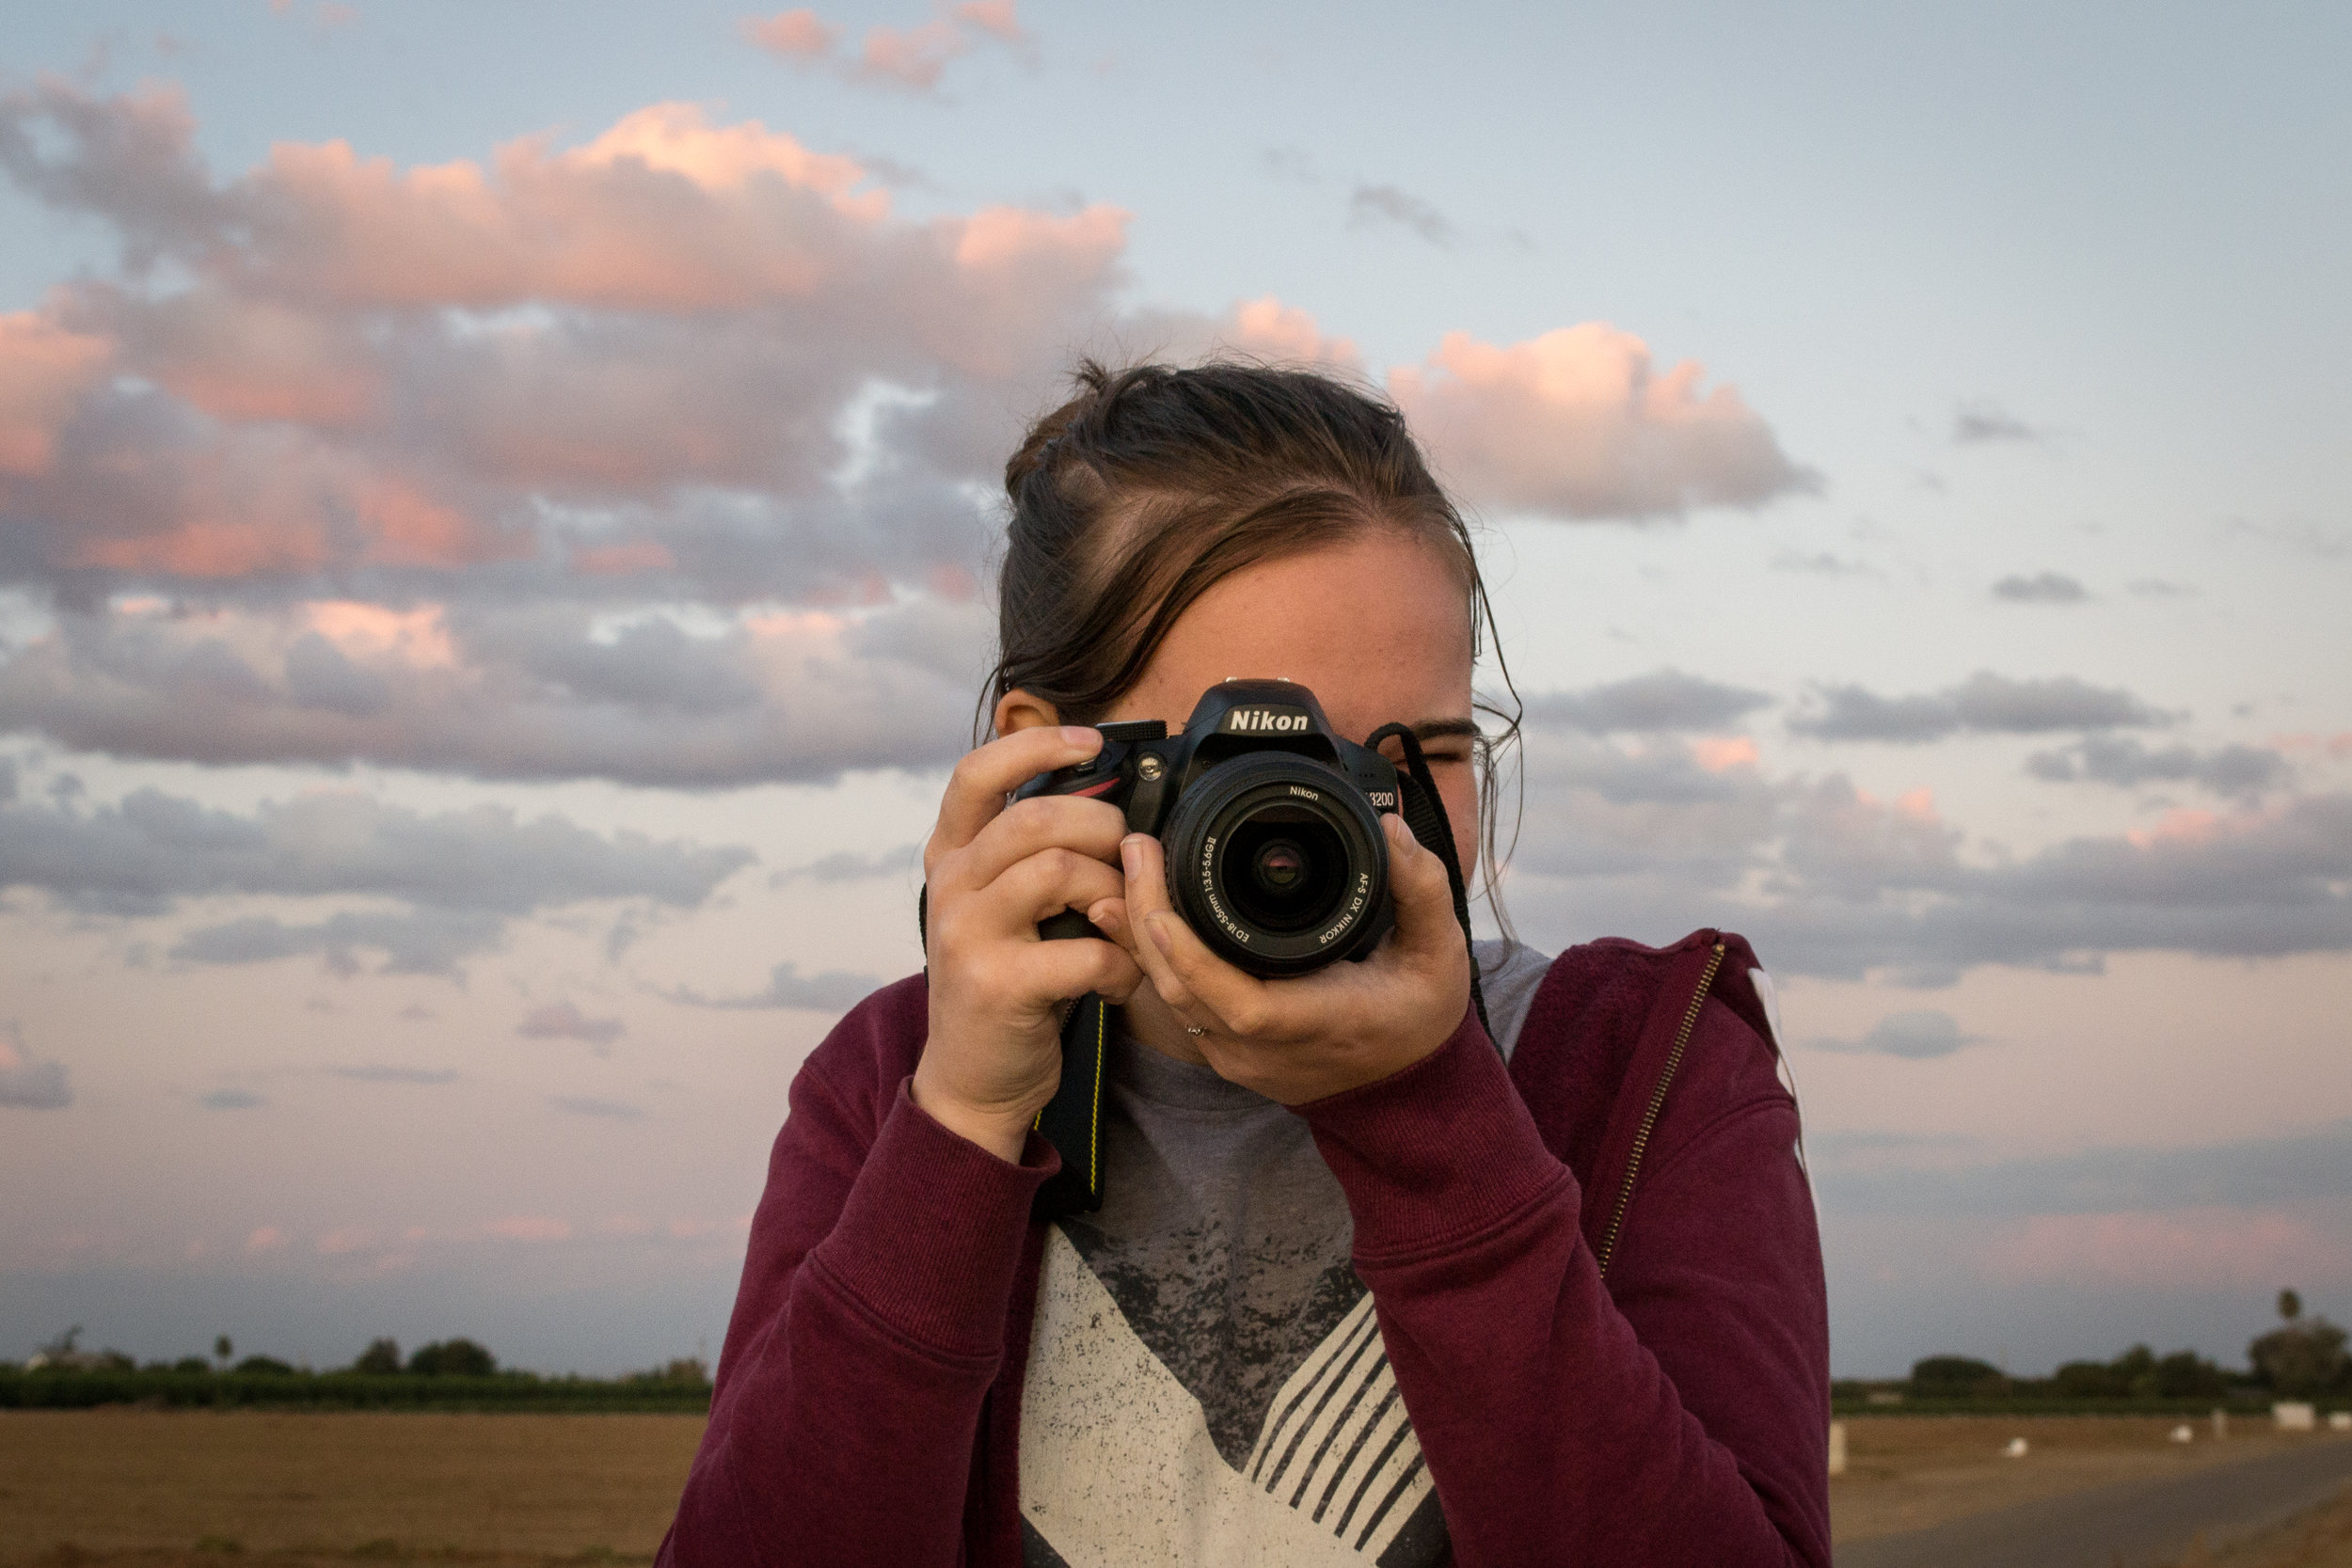 Kelsey and her camera